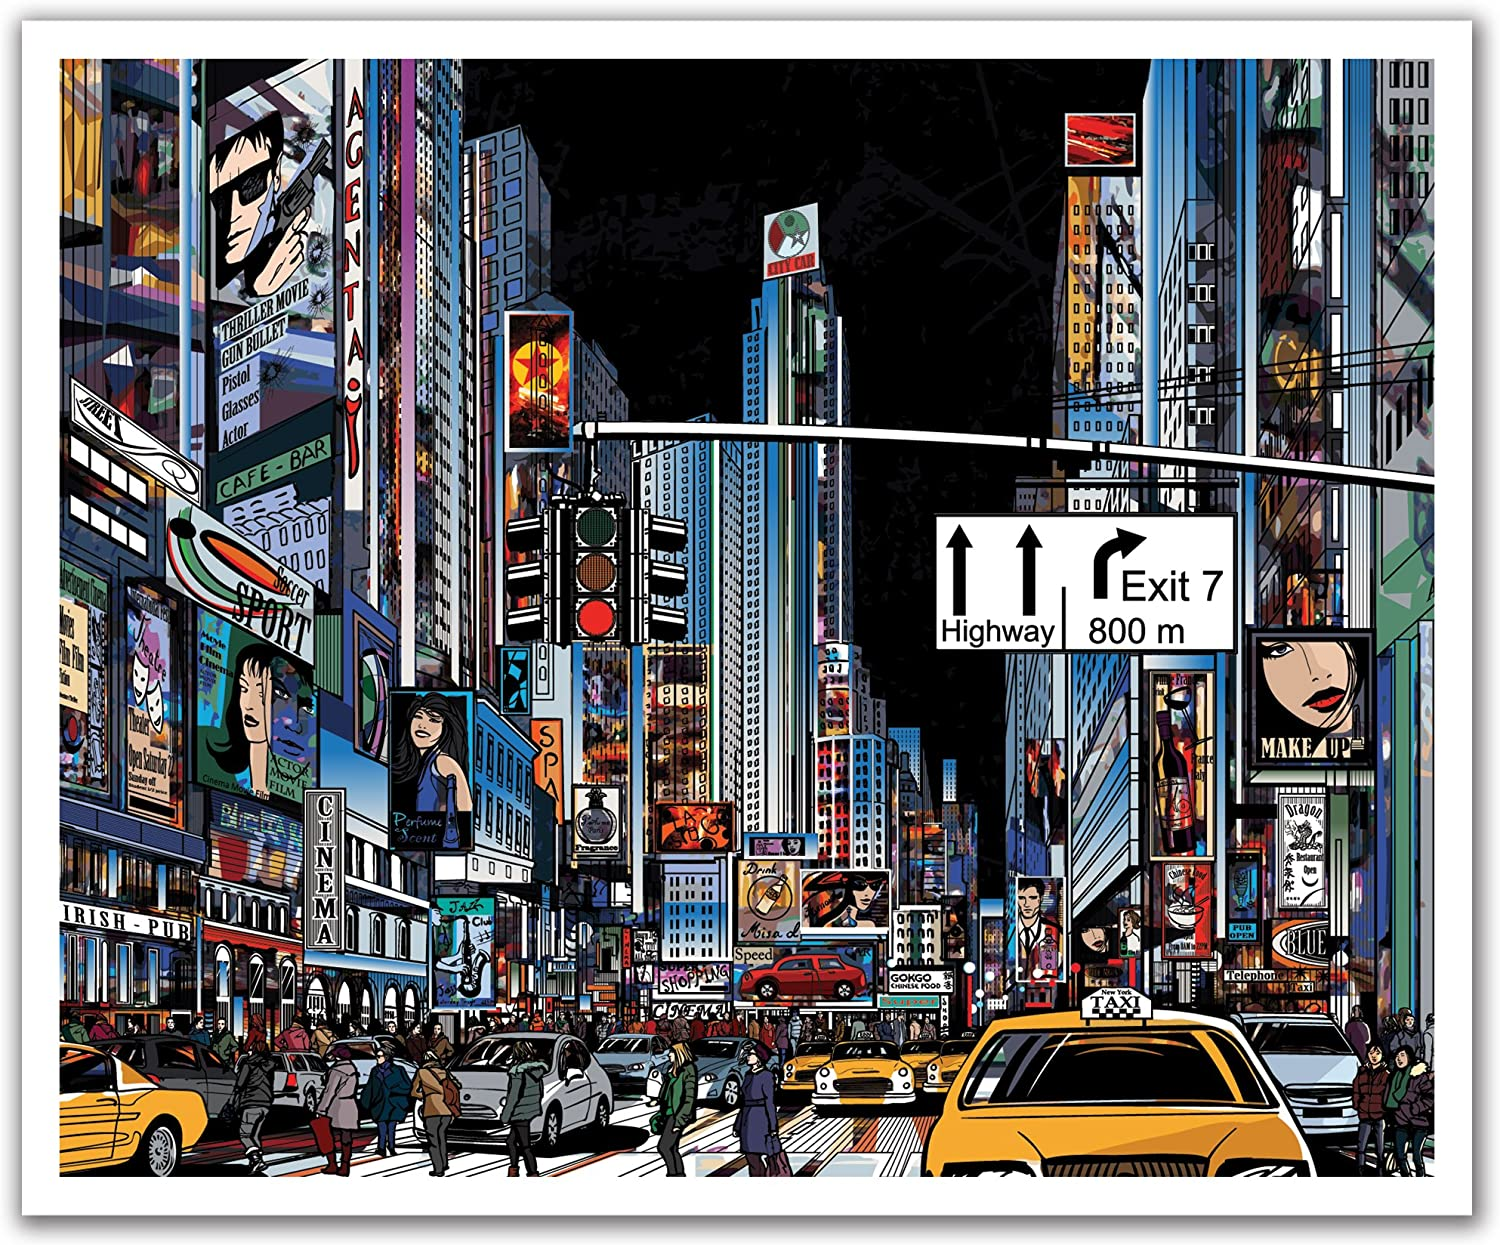 JP London POSLT2259 uStrip Lite Removable Wallpaper Decal Mural New York City Street Painted Never Sleeps 24-Inch x 19.75-Inch